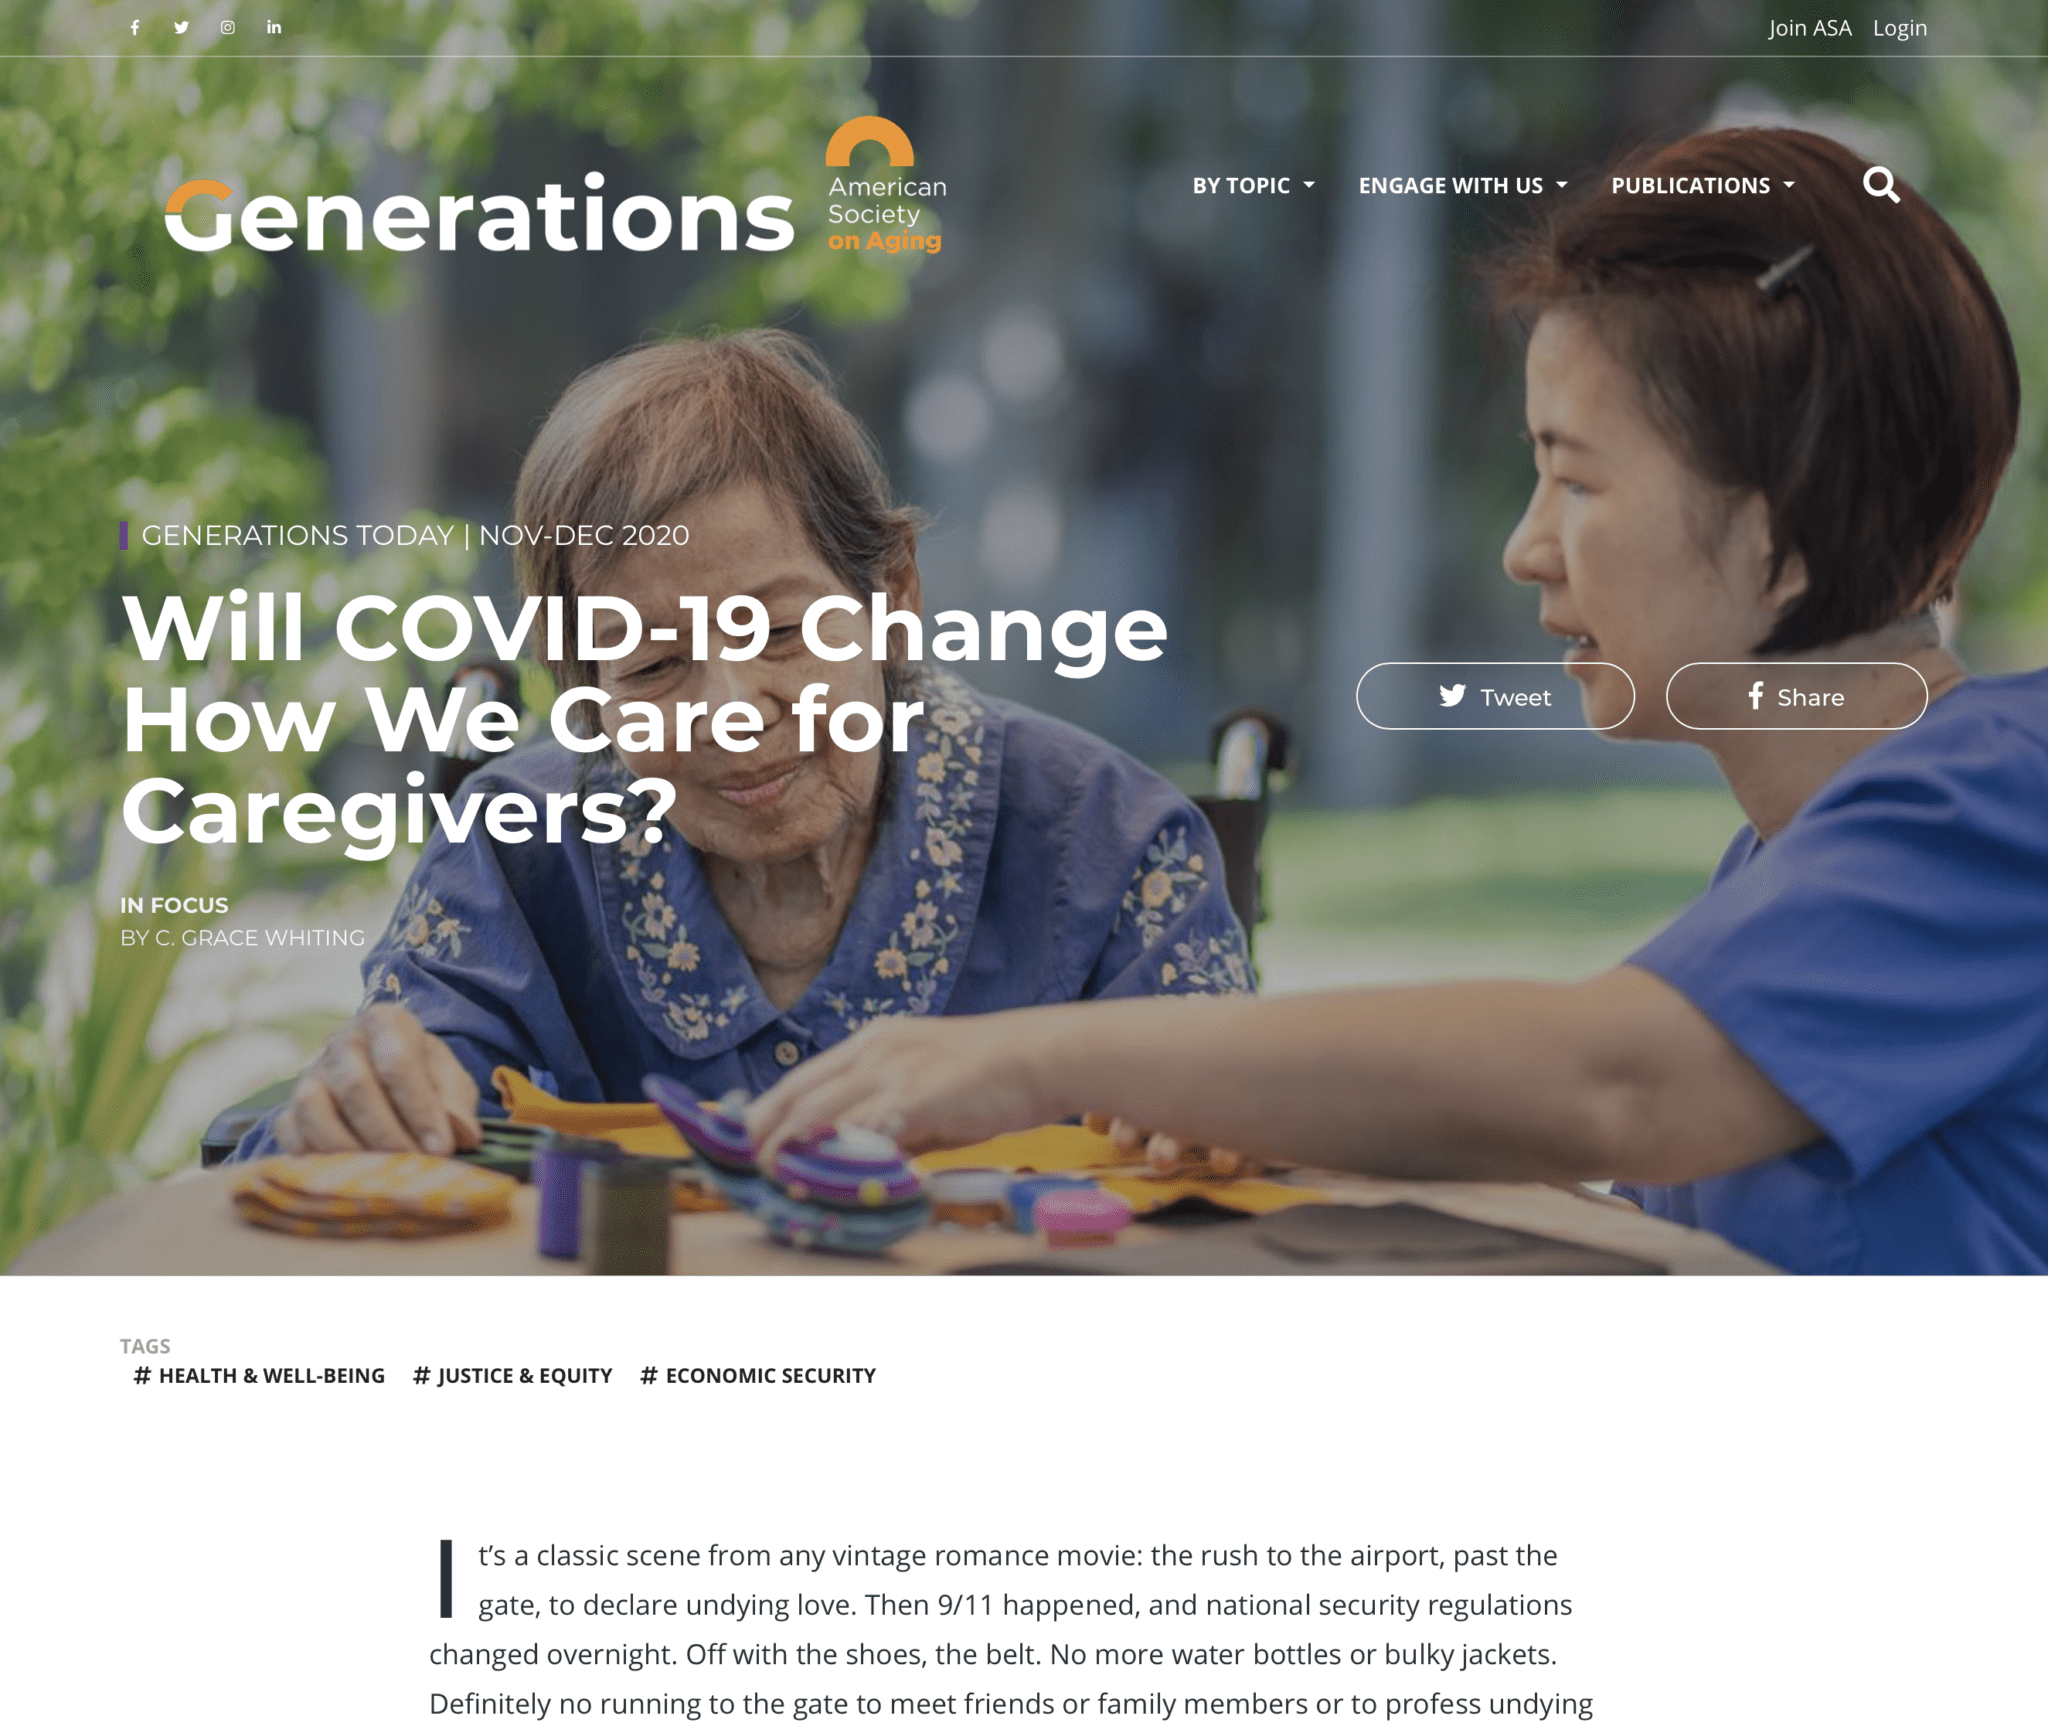 Generations | Will COVID-19 Change How We Care for Caregivers?